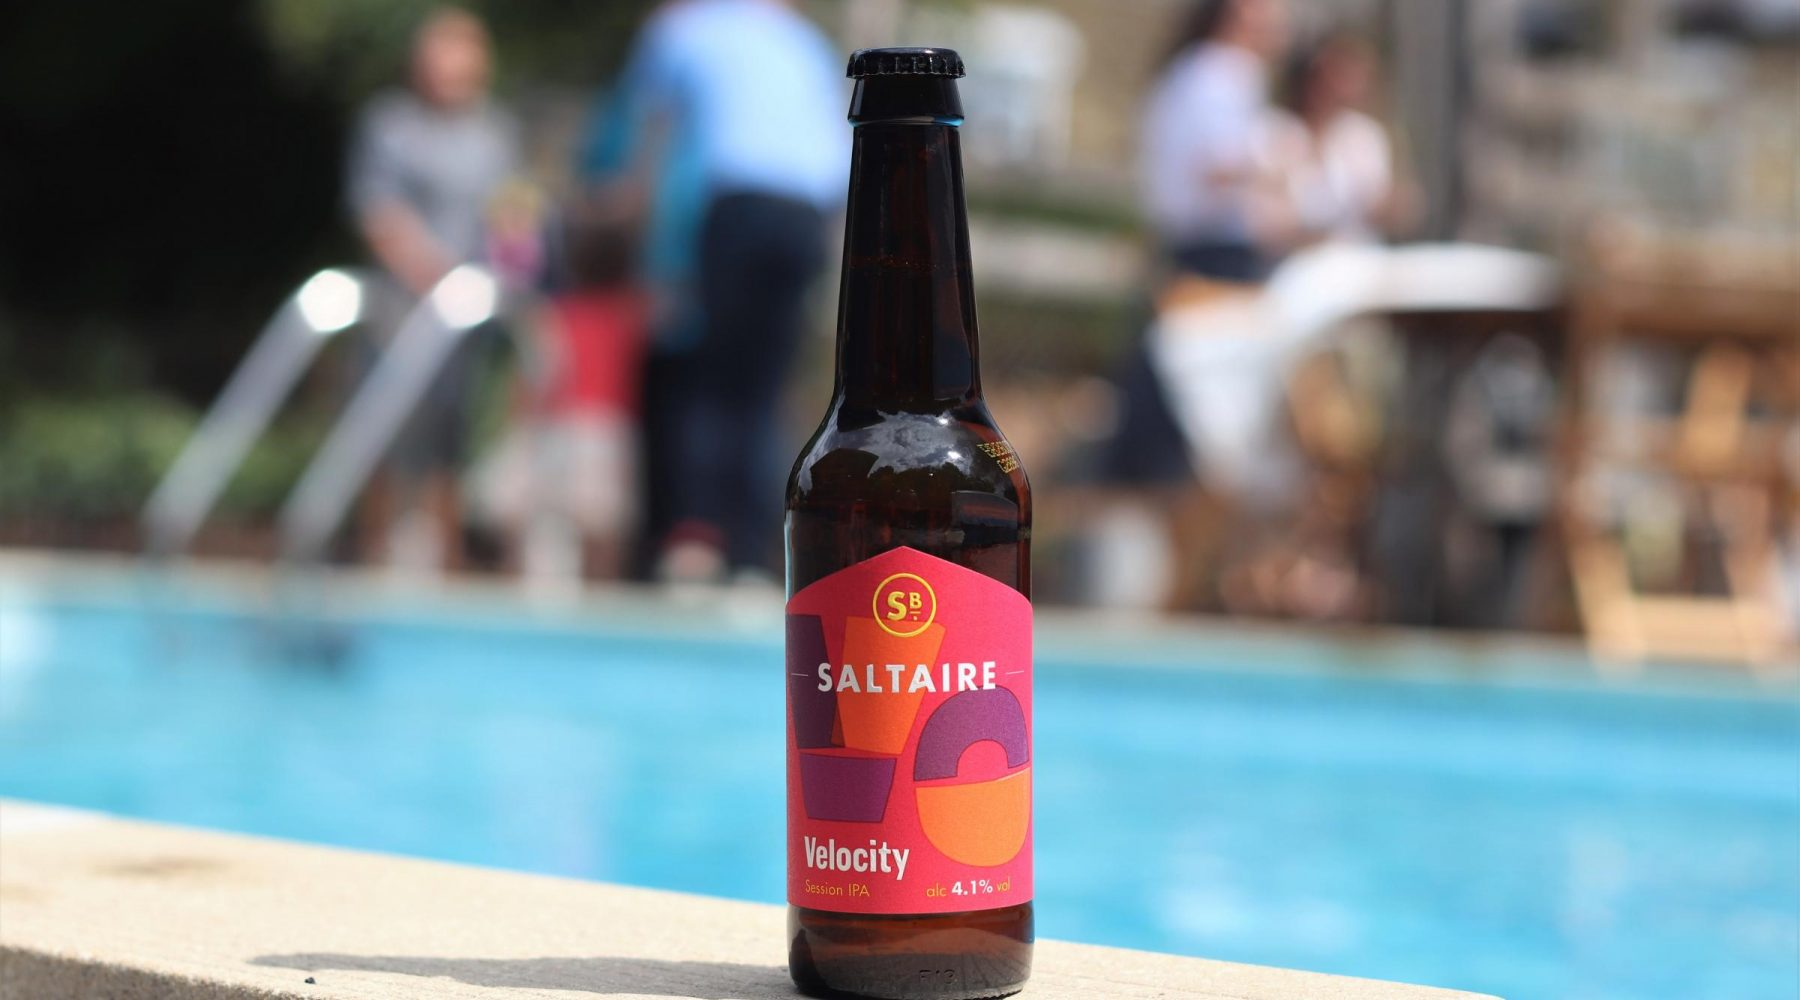 New Tesco deal sees Saltaire Brewery beer go…